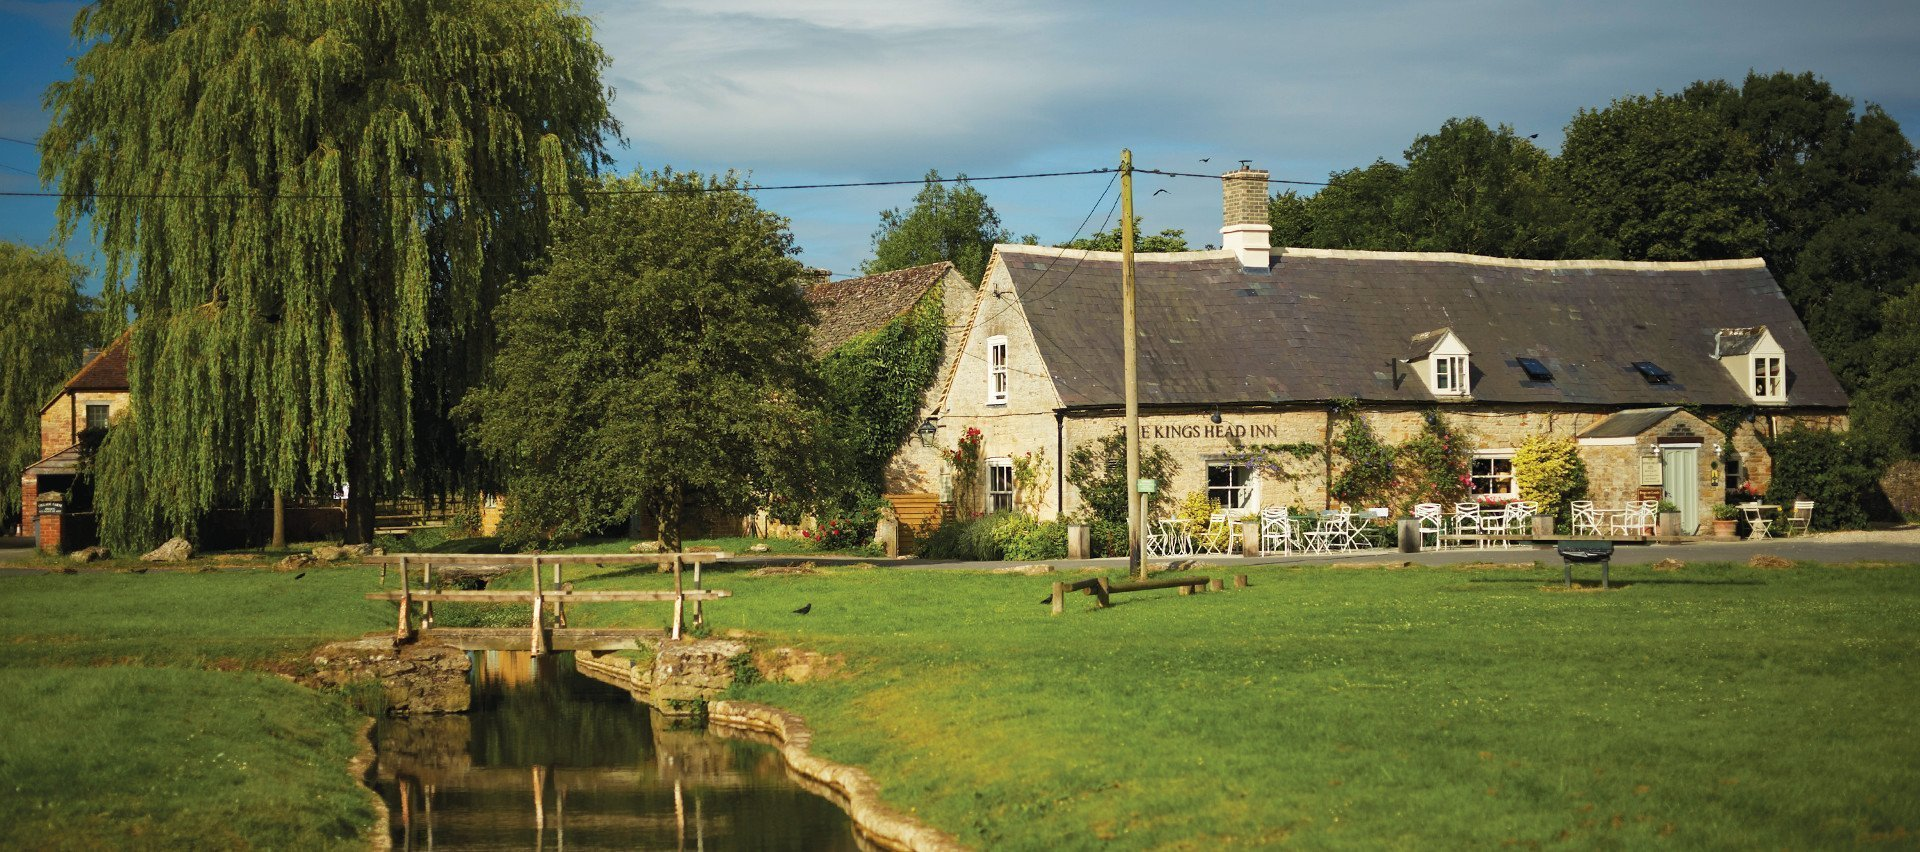 The King's Head Inn Bledington Oxfordshire - Restaurant & Pub with Rooms - Exterior